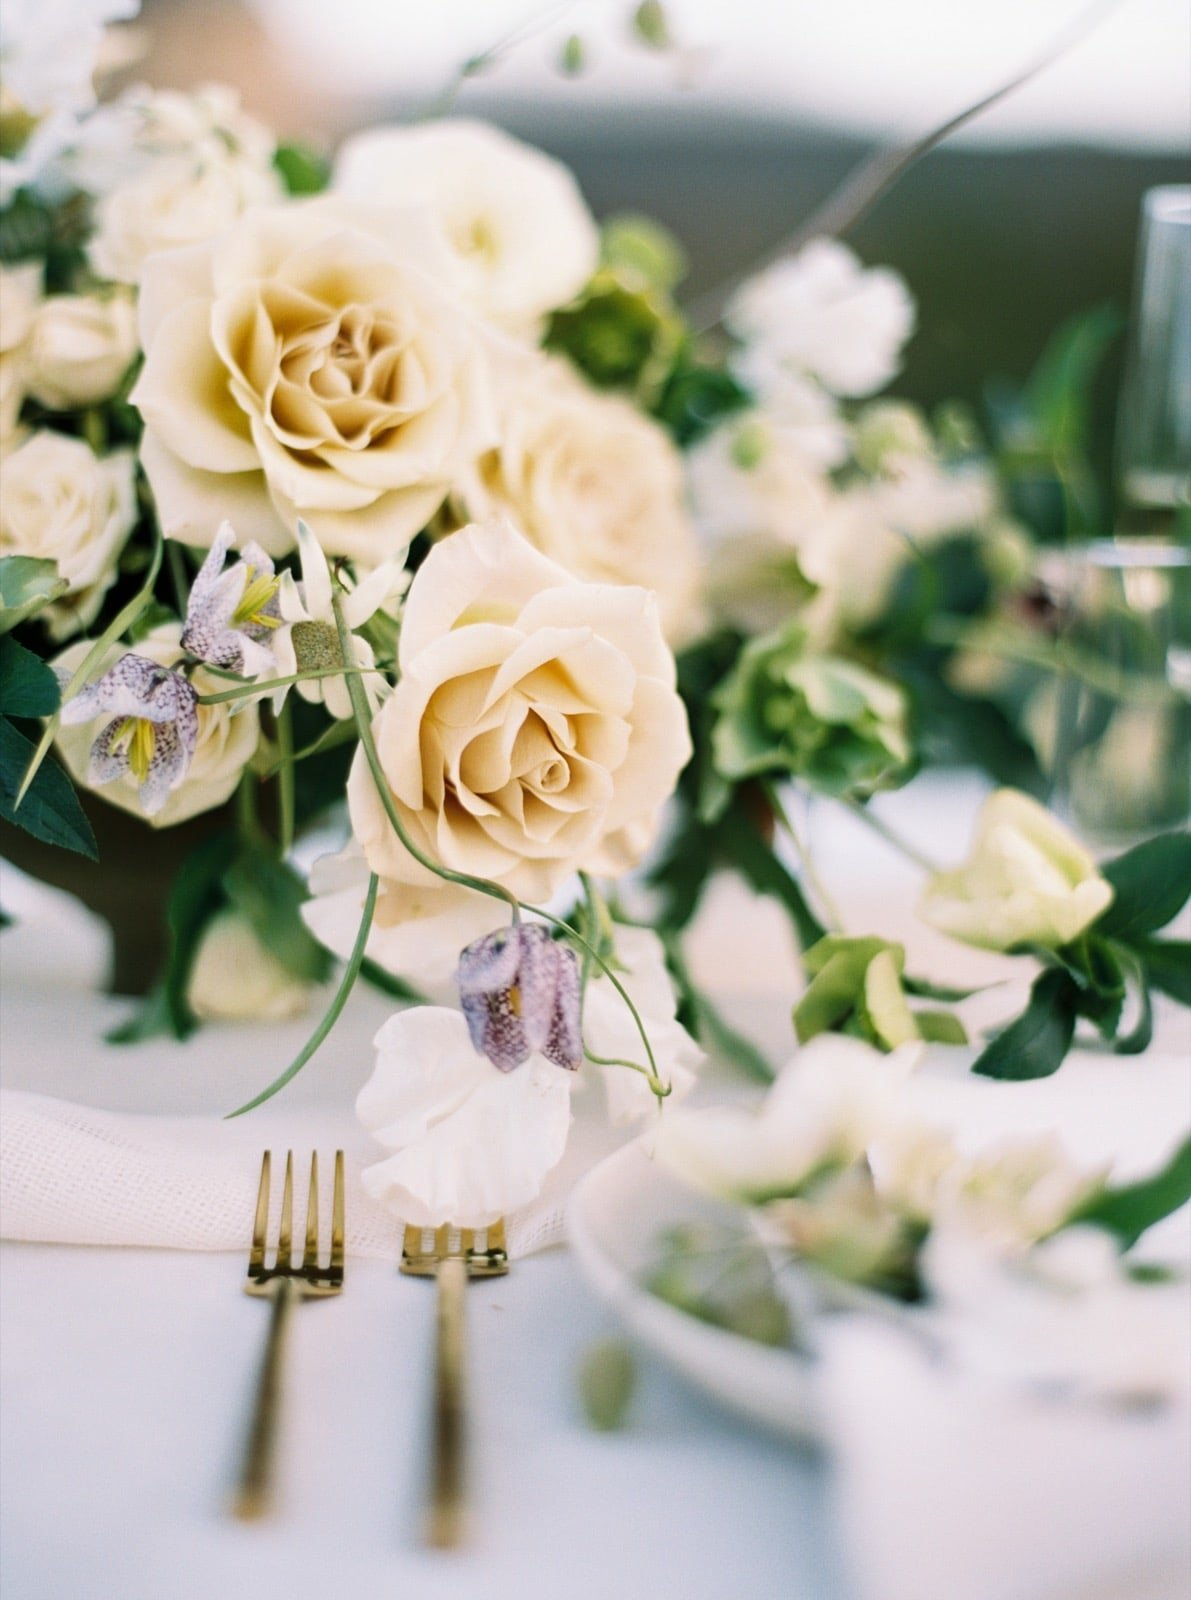 janna brown nashville florist and wedding designer-1